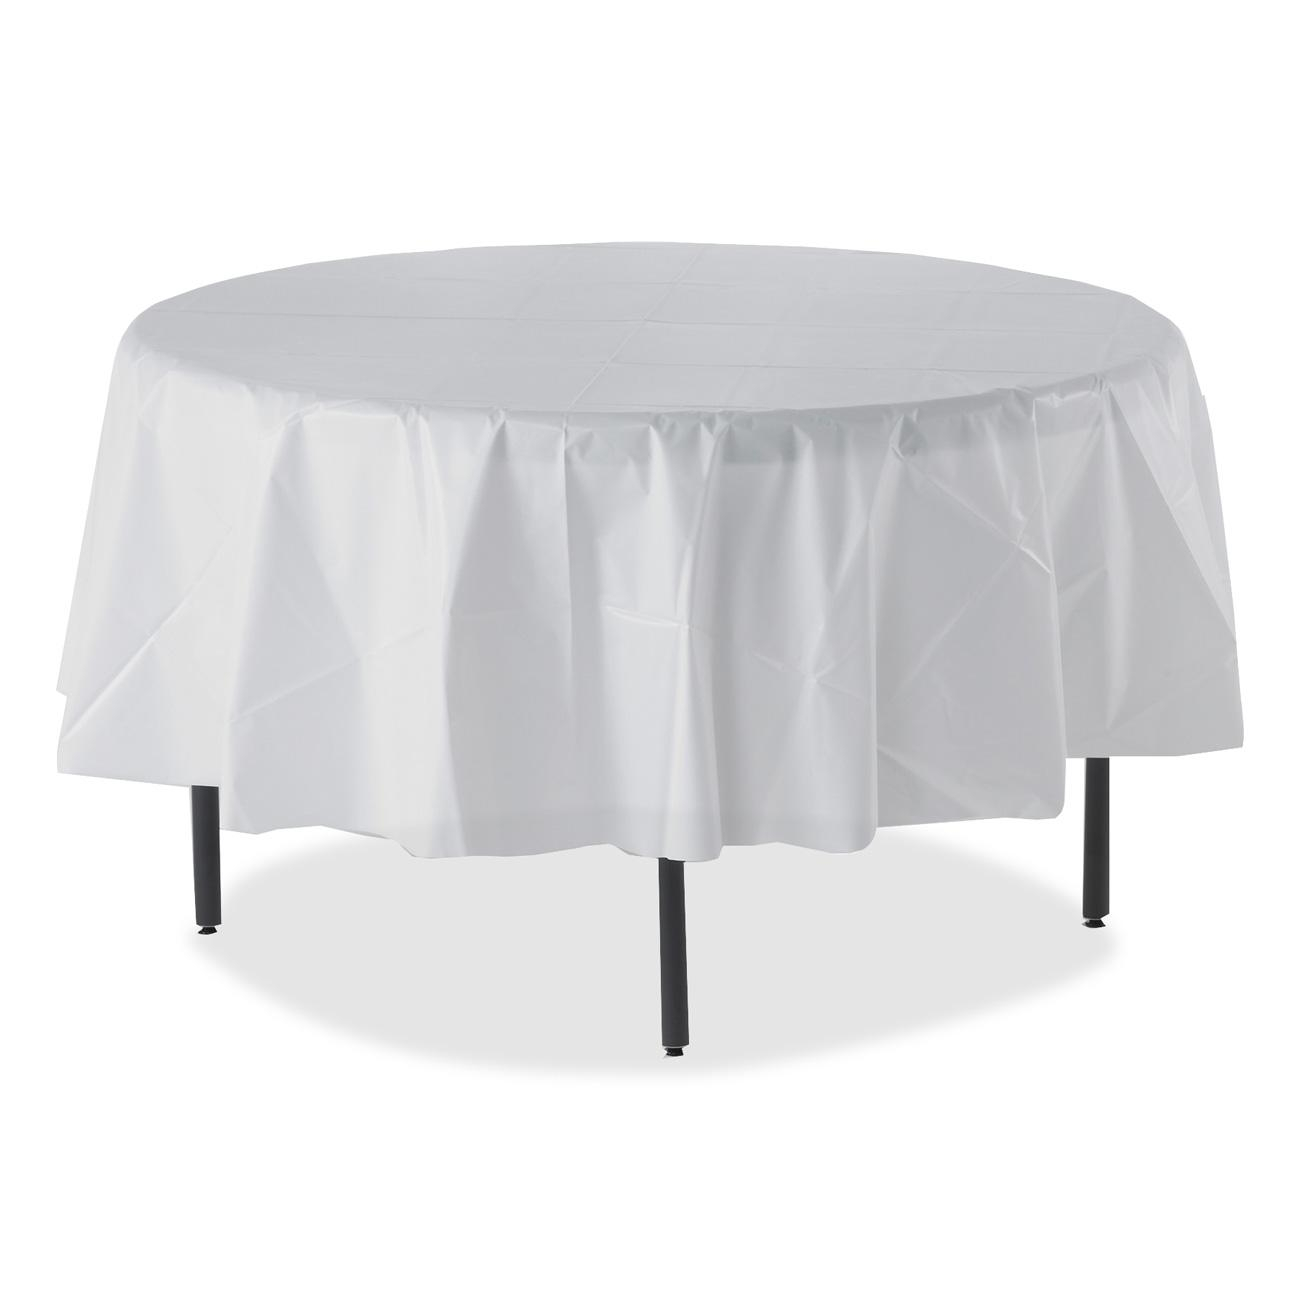 White patio table cover